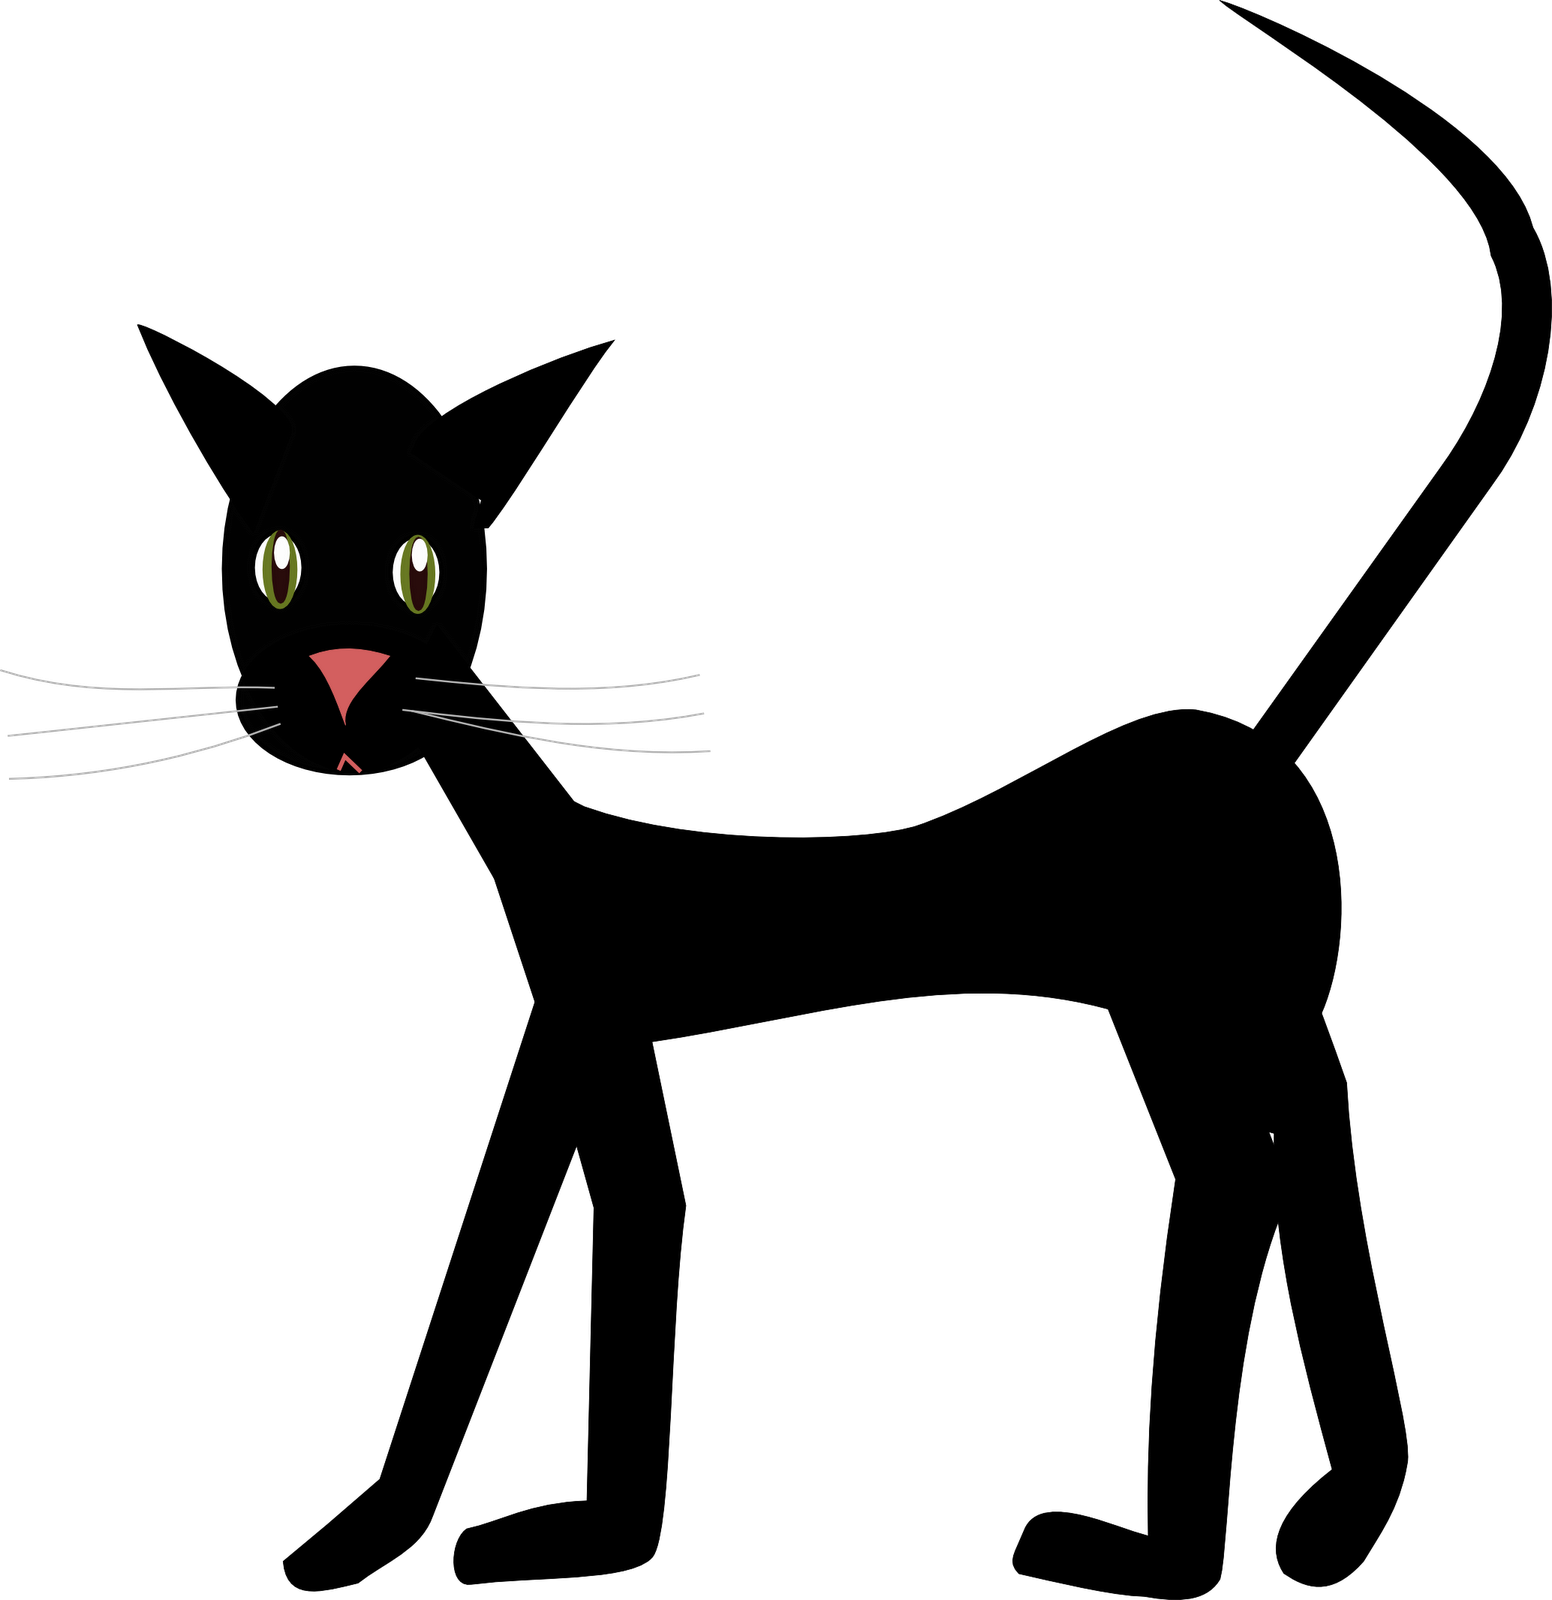 Free Cat Images: free cat doodle clipart graphic.